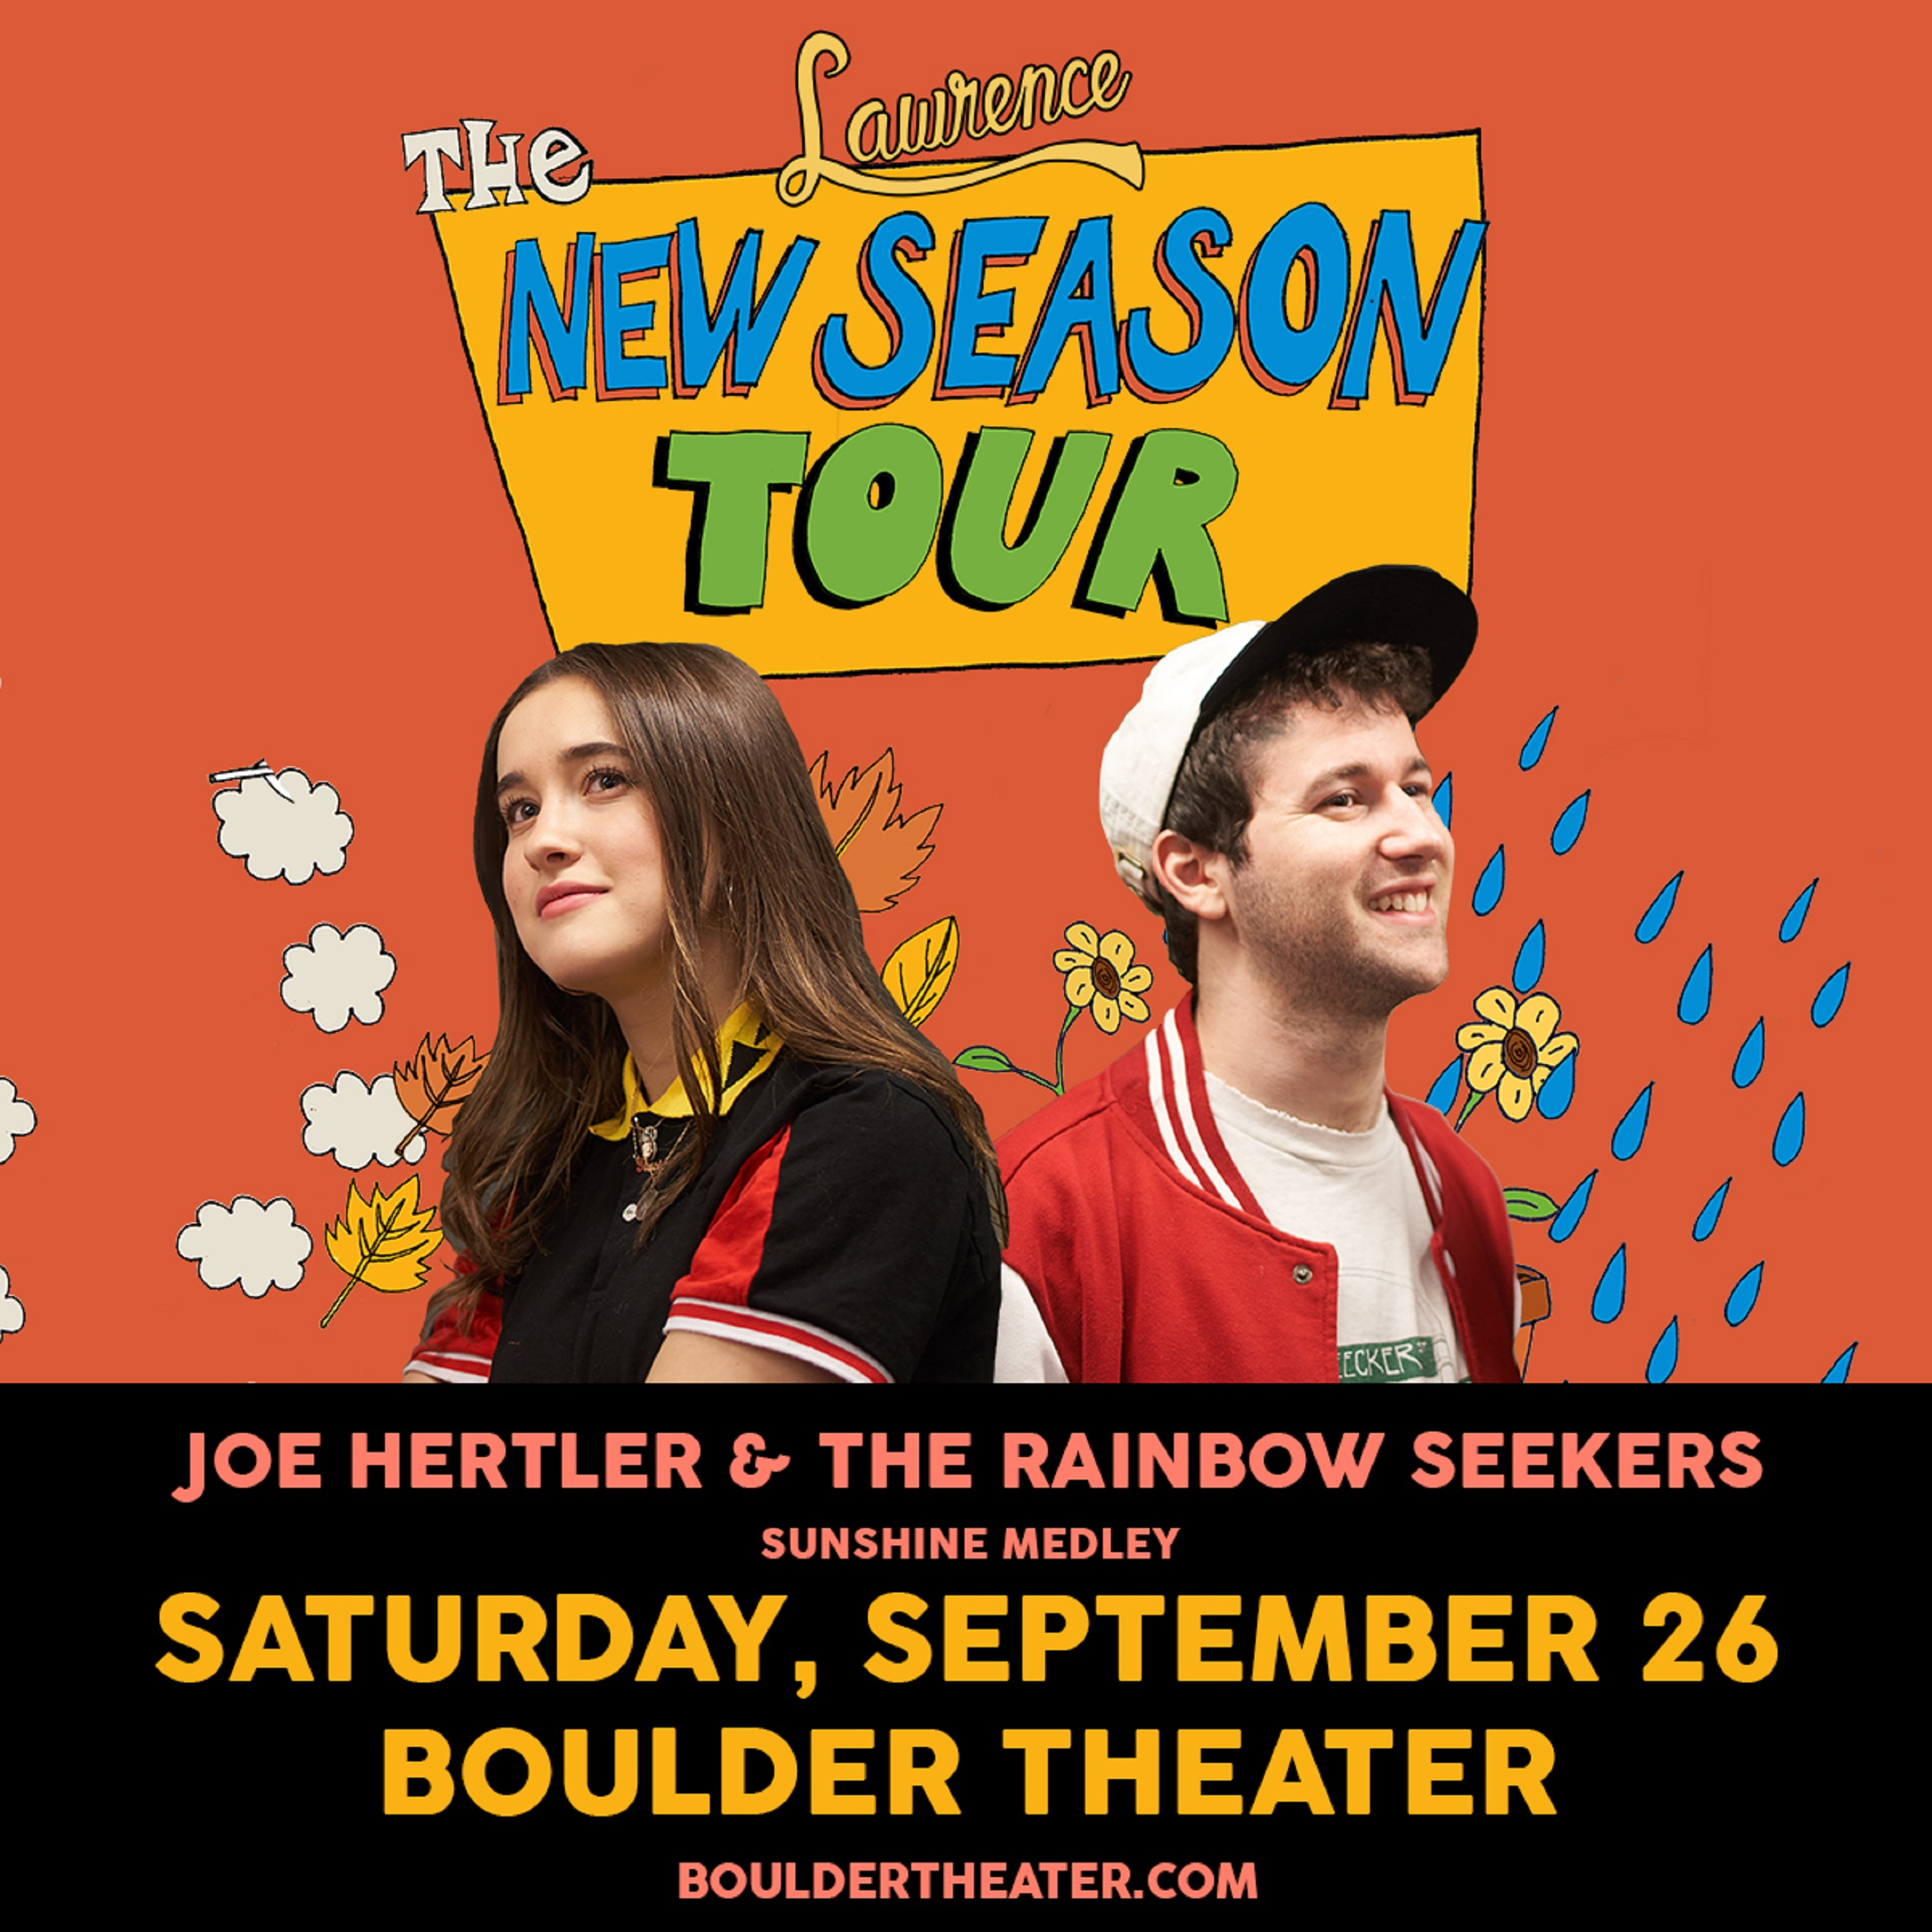 Lawrence w/ Joe Hertler & The Rainbow Seekers | Boulder Theater | 9/26/2020